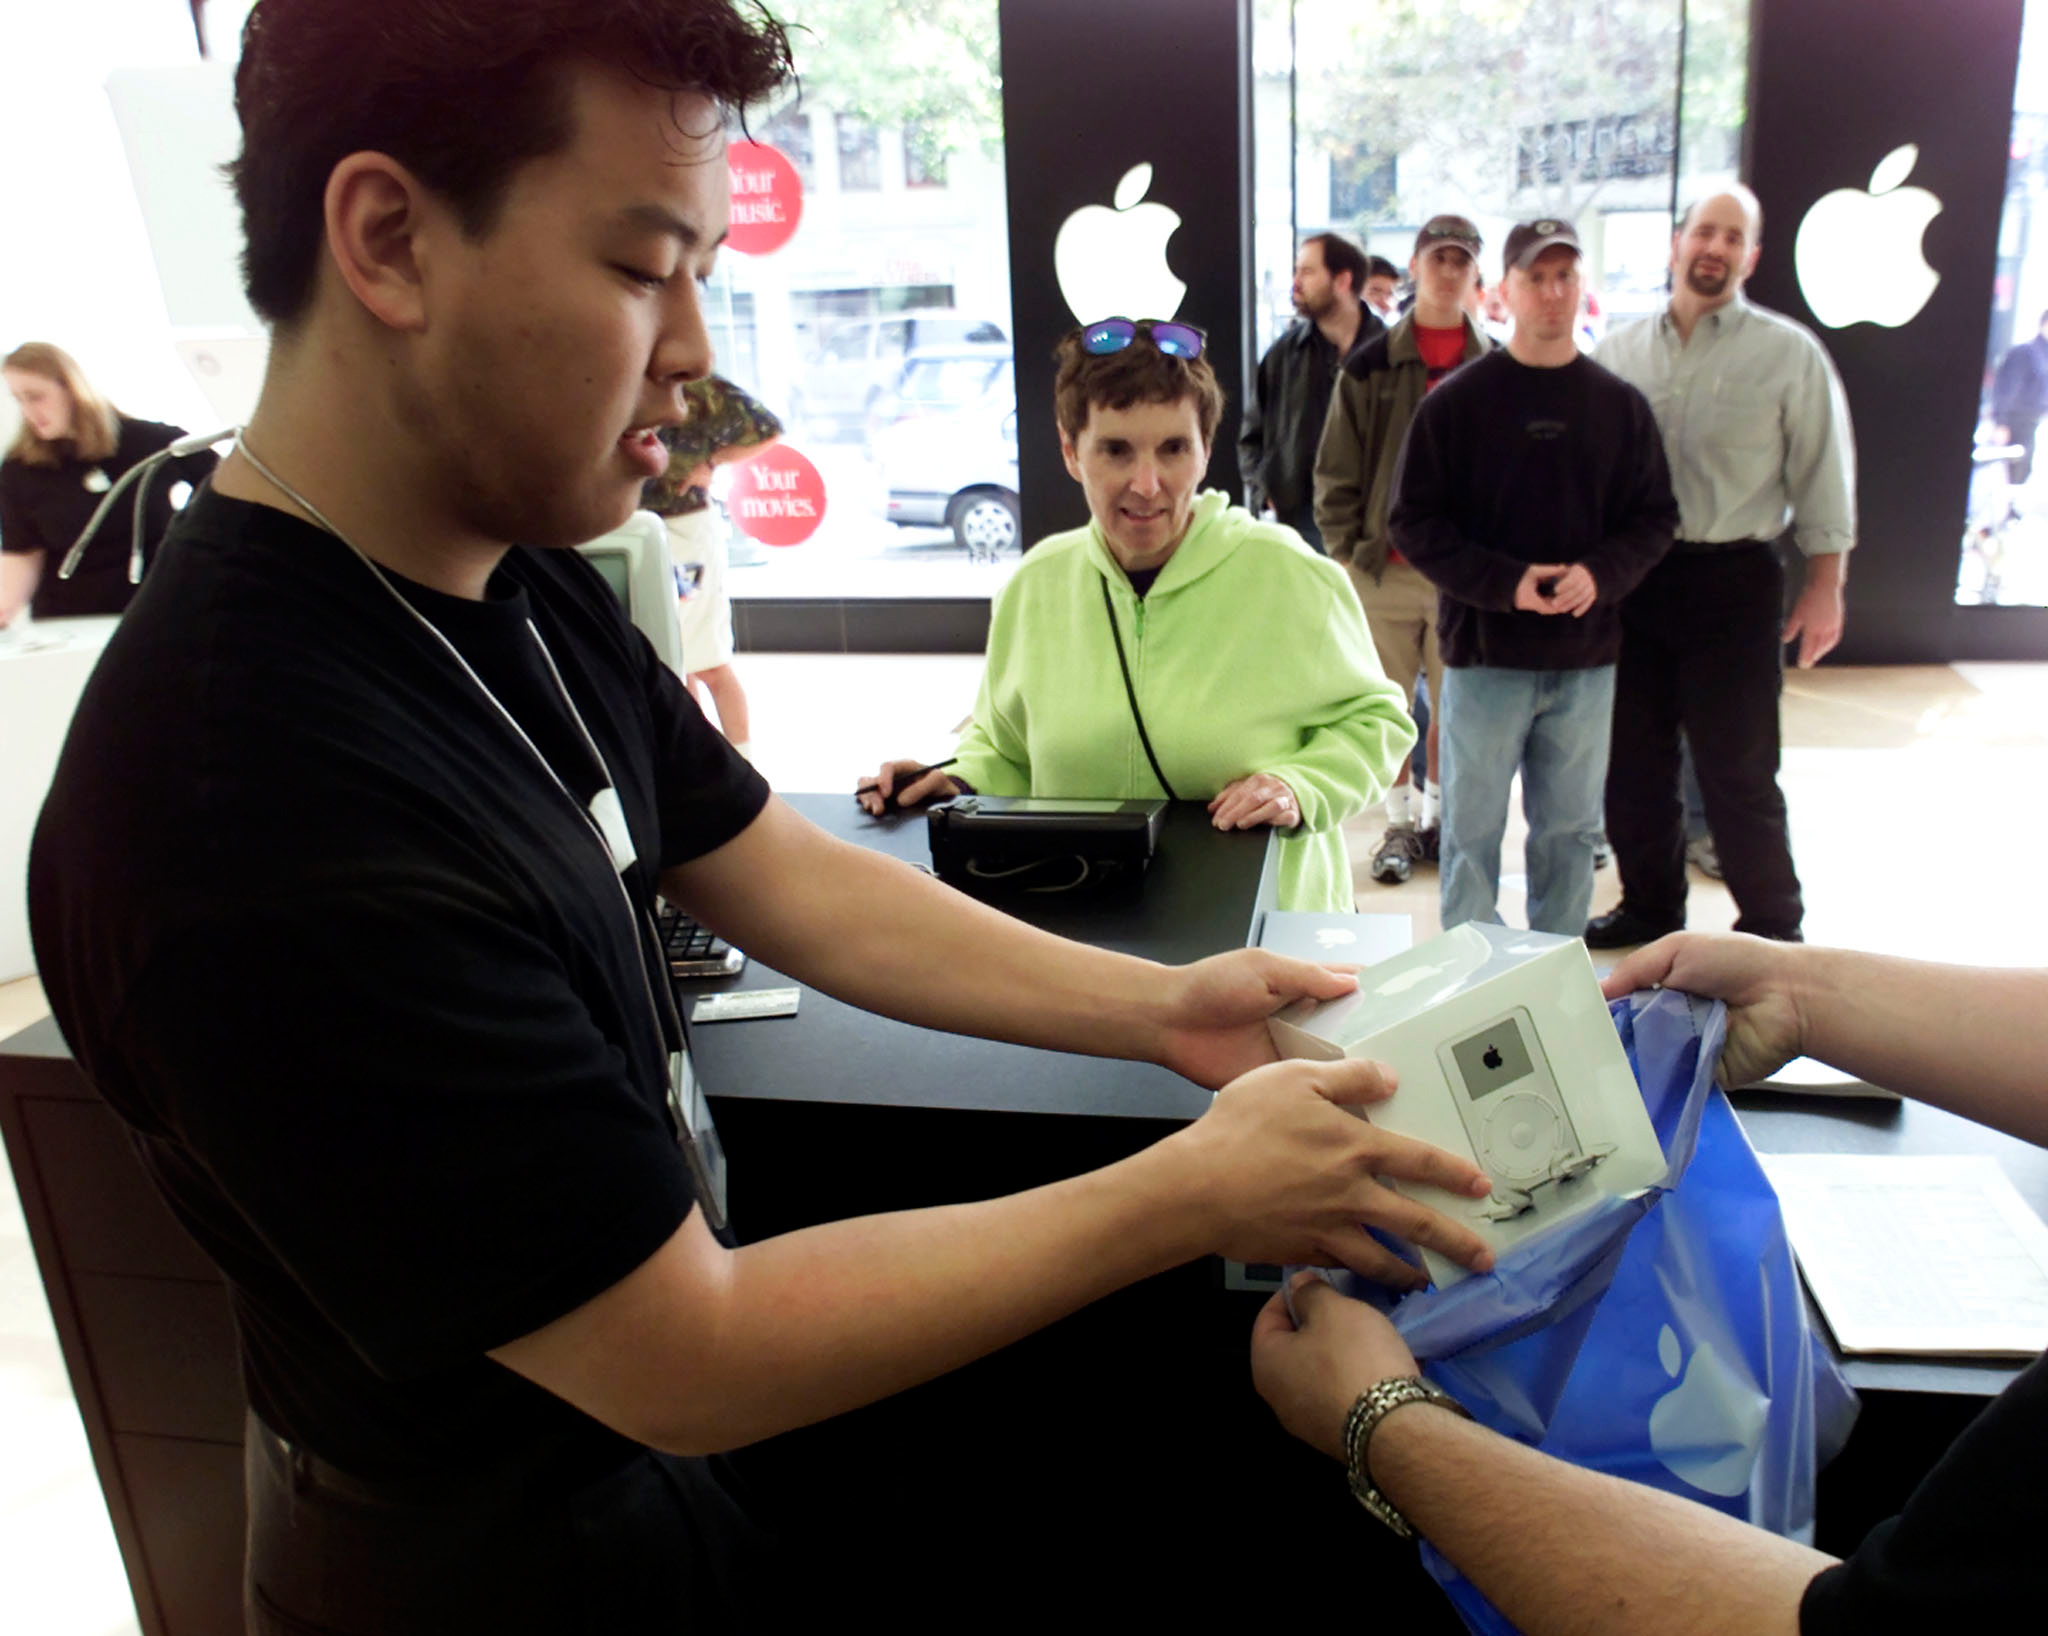 A salesperson bags a new Apple iPod MP3 player shortly after the Apple store opened in Palo Alto, California, November 10, 2001. Apple stores across the country hosted lines of eager customers wanting to be among the first to own iPod. The breakthrough MP3 player holds up to 1,000 songs and fits in your pocket.